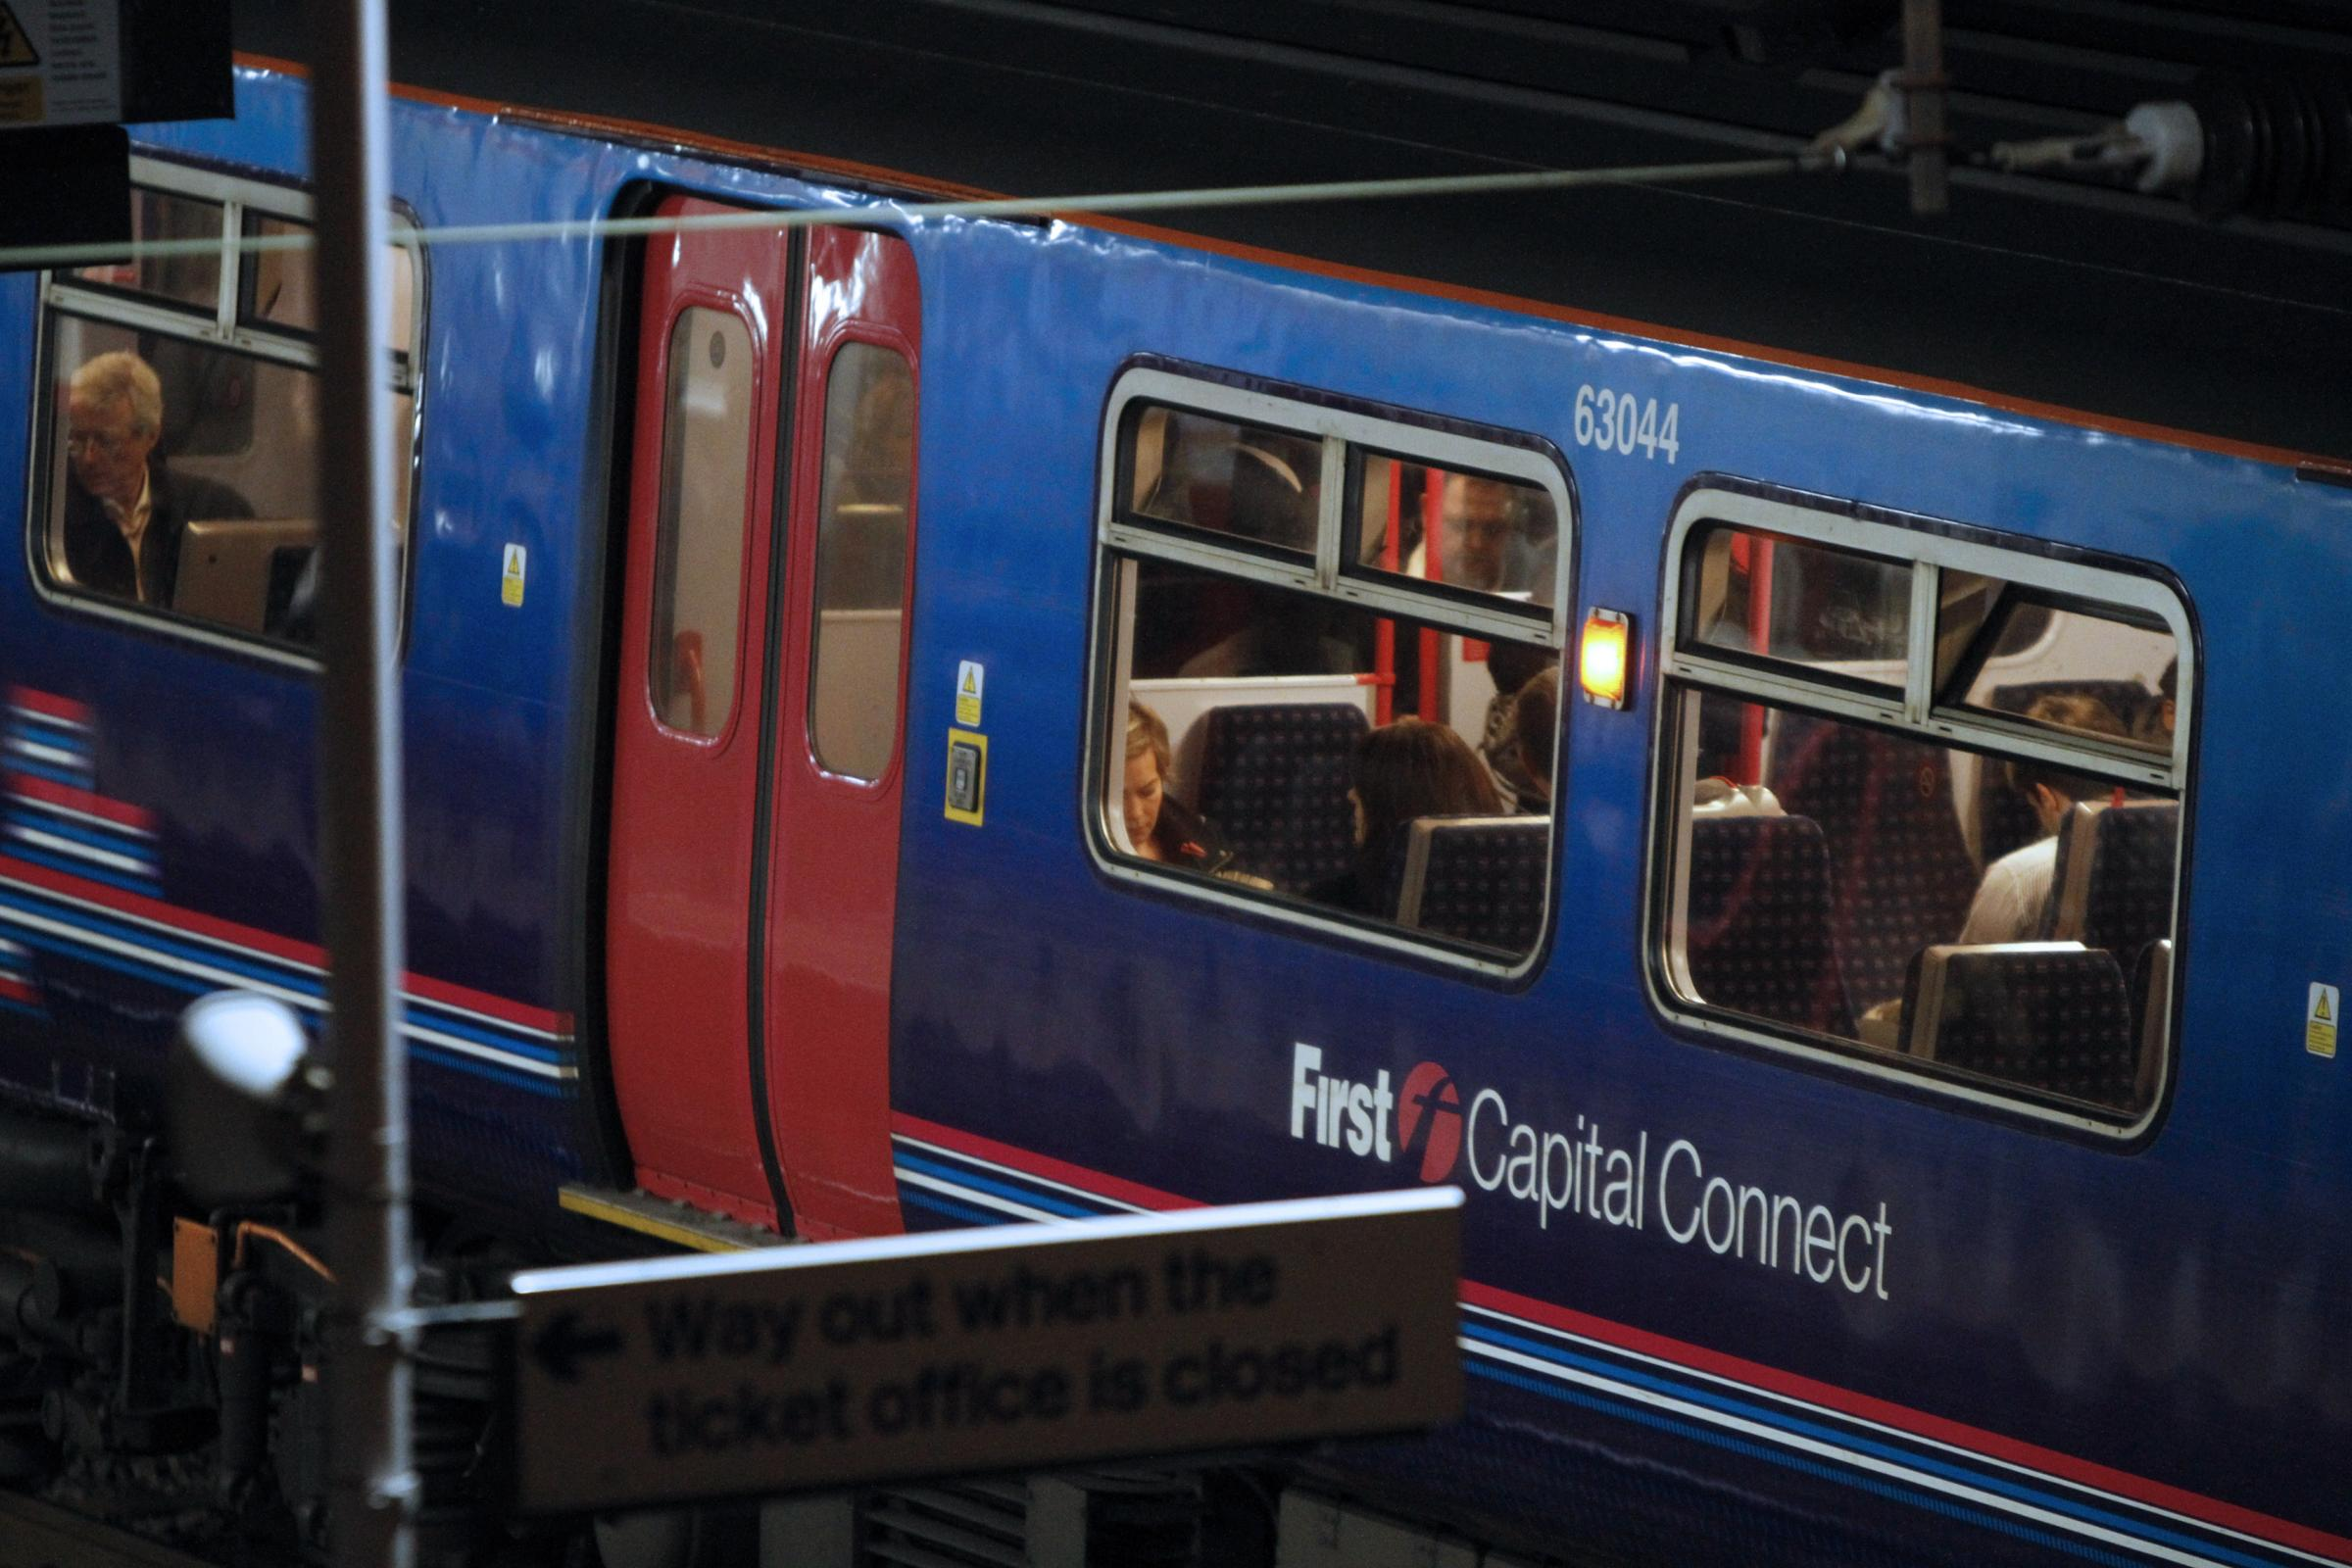 Breaking: First Capital Connect loses Thameslink rail franchise